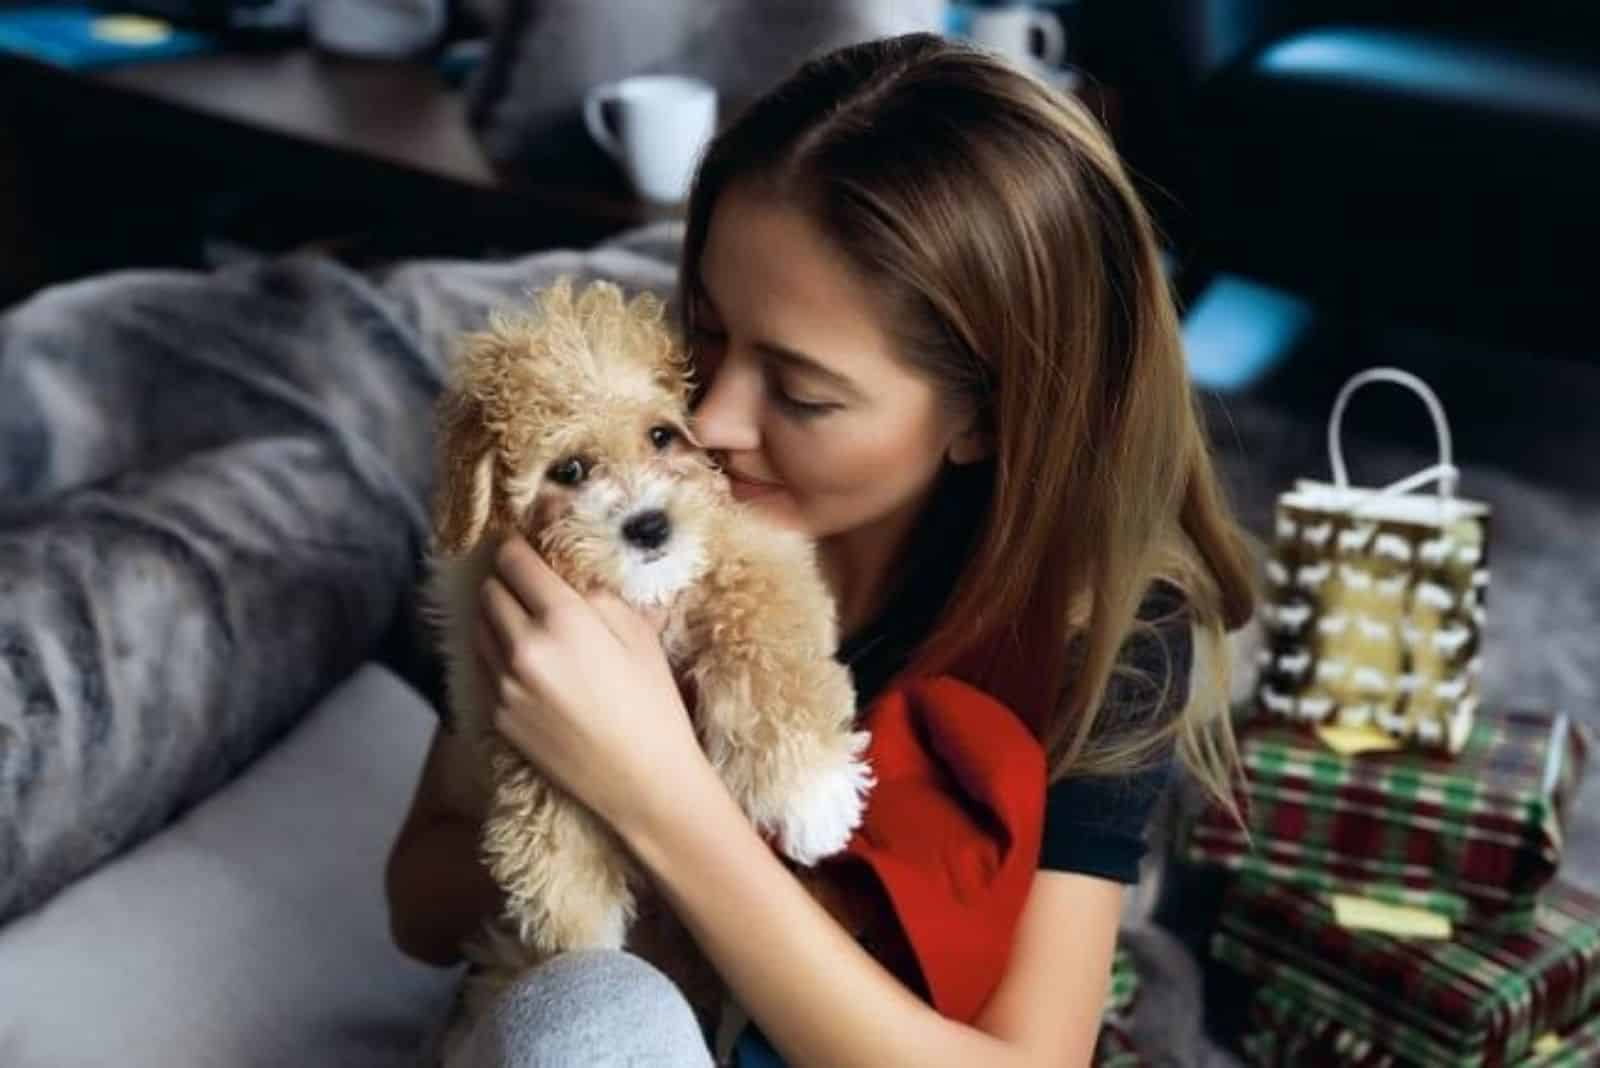 Cavapoo in a woman's arms